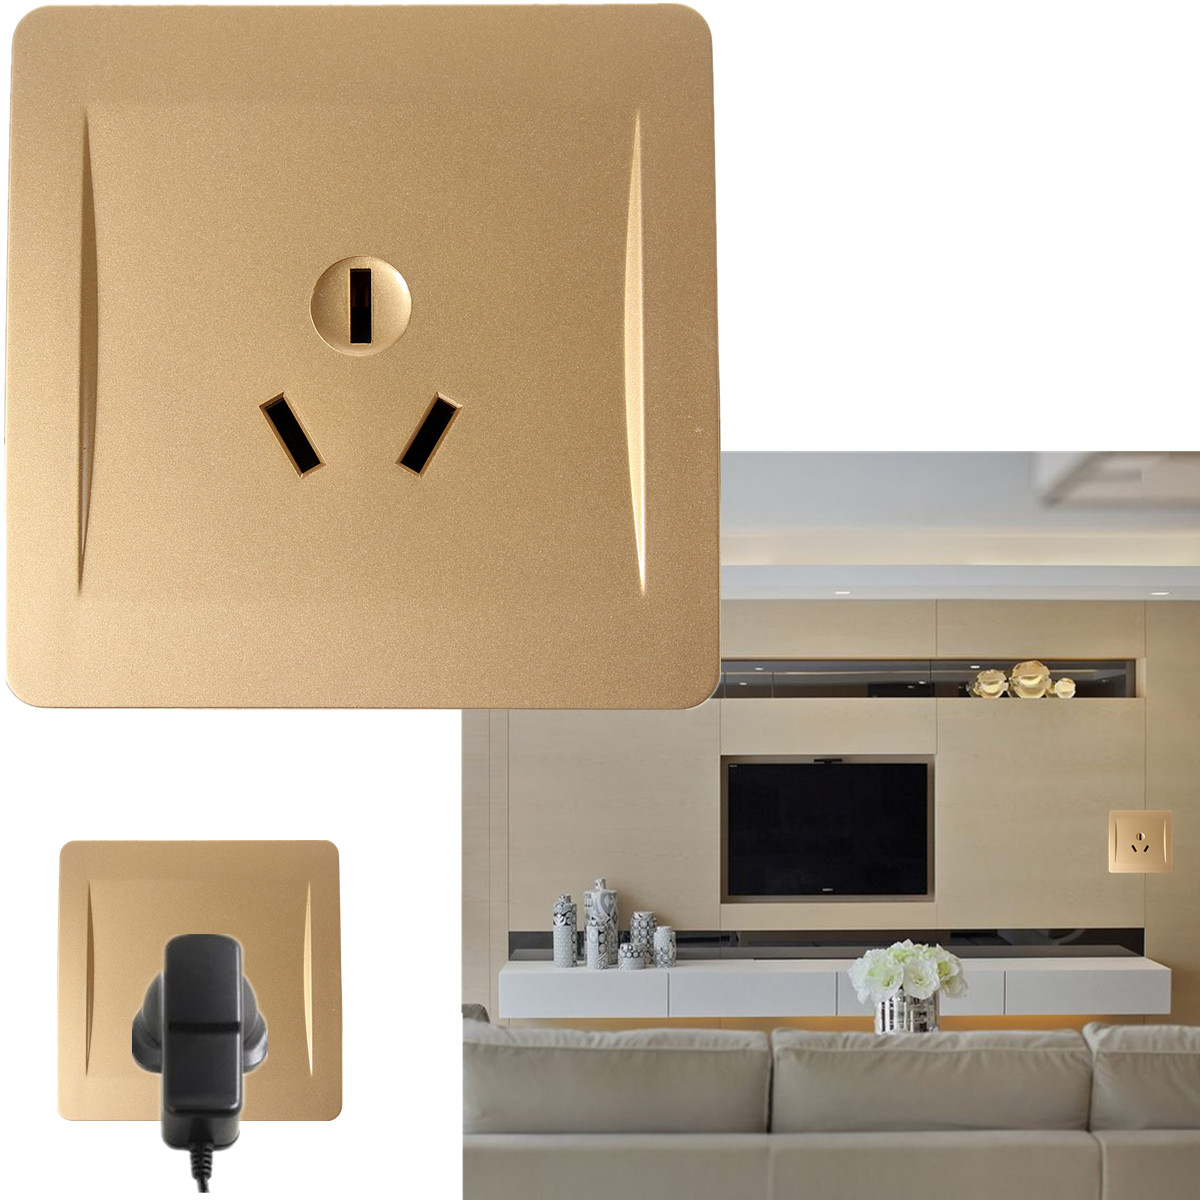 AC110-250V Electric Wall Charger Switch Socket Adapter Power Outlet Panel Faceplate AU Plug